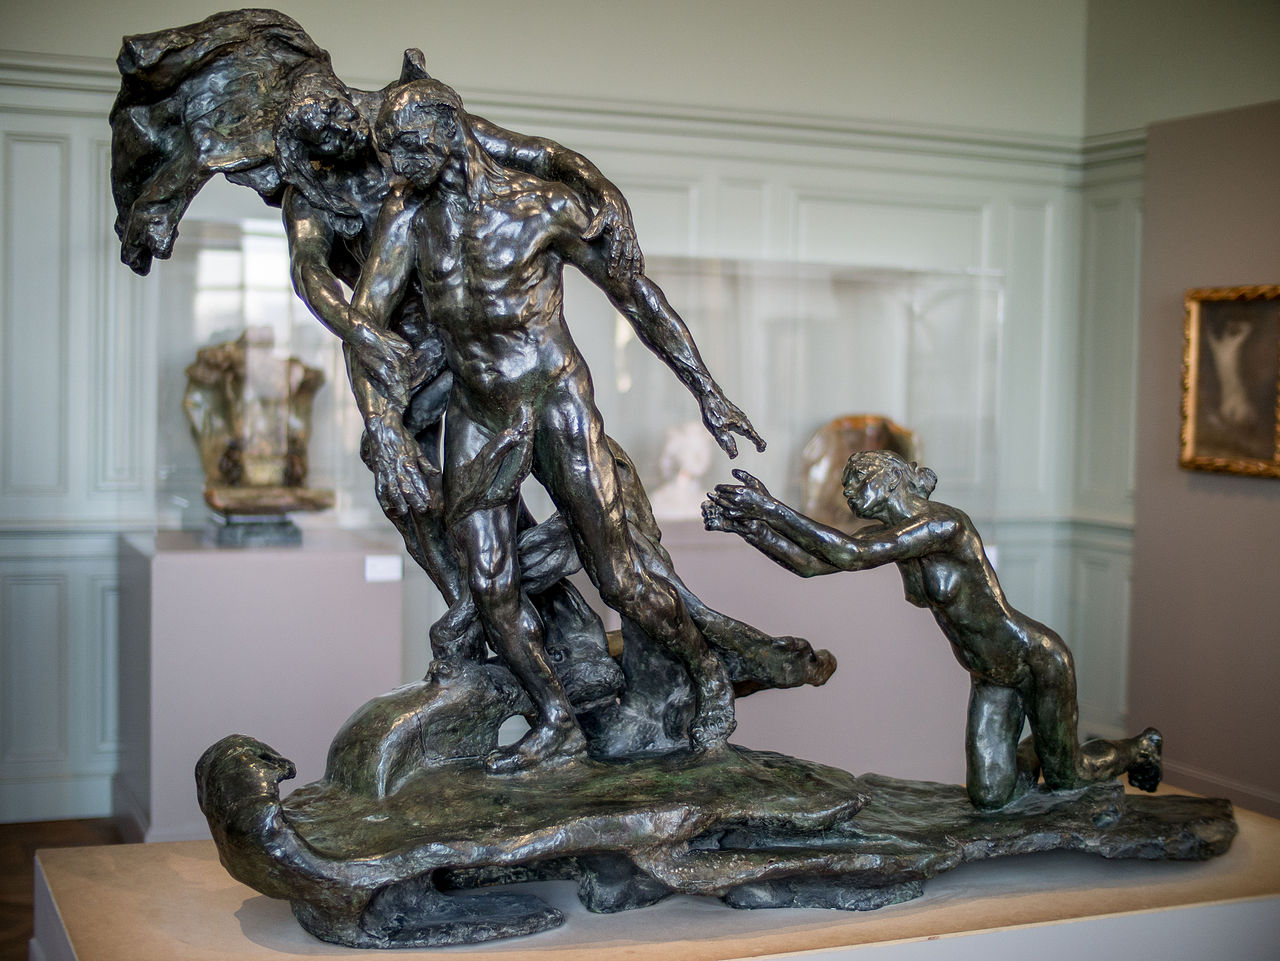 L'Âge mûr (1899), Camille Claudel, bronze, (Image courtesy of the Musée Rodin, Paris)